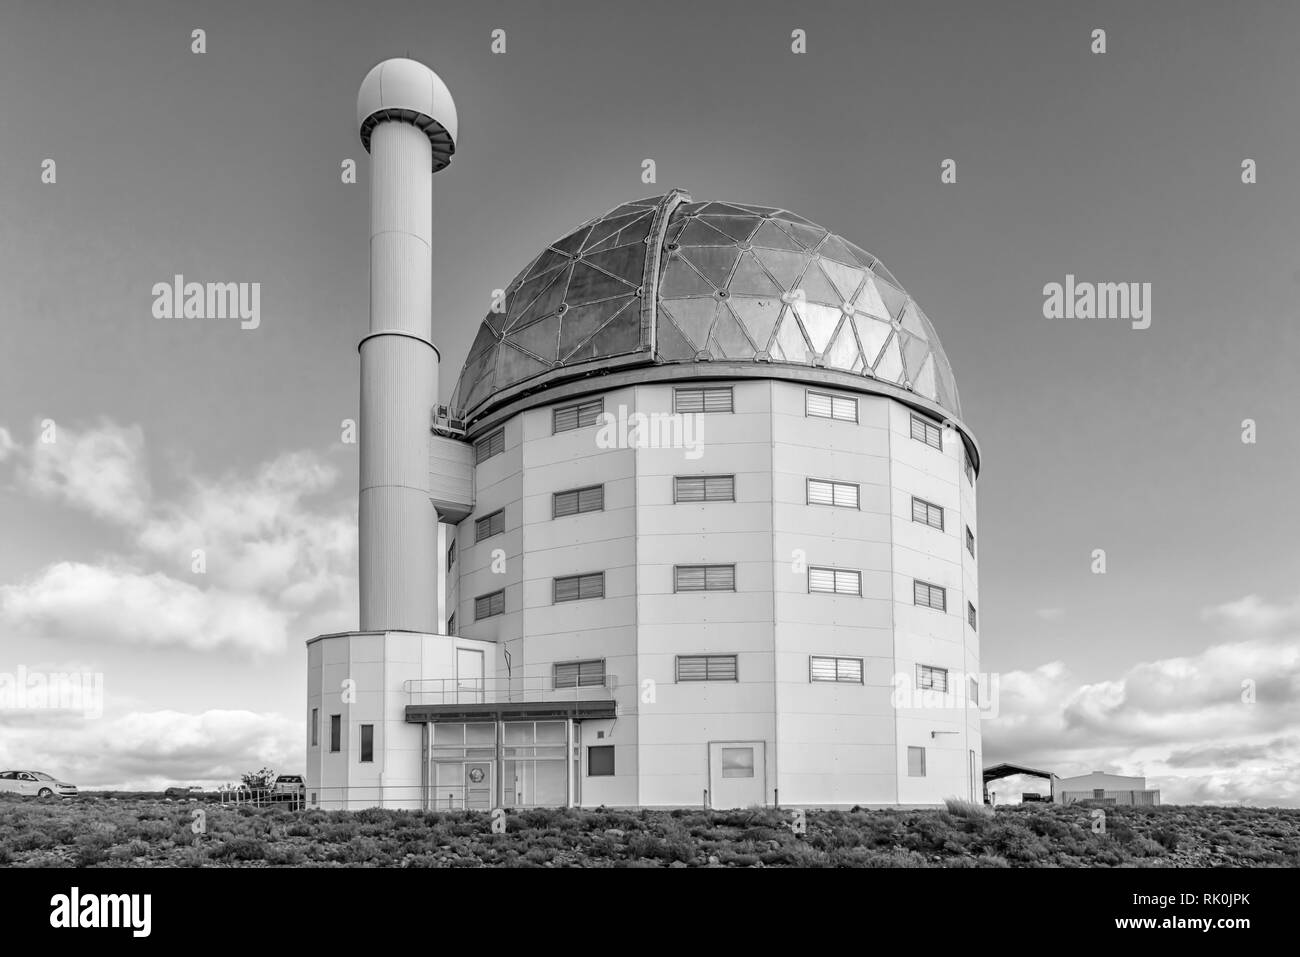 SUTHERLAND, SOUTH AFRICA, AUGUST 7, 2018: Building of the SALT 11-meter telescope at the South African Astronomical Observatory near Sutherland. Vehic - Stock Image